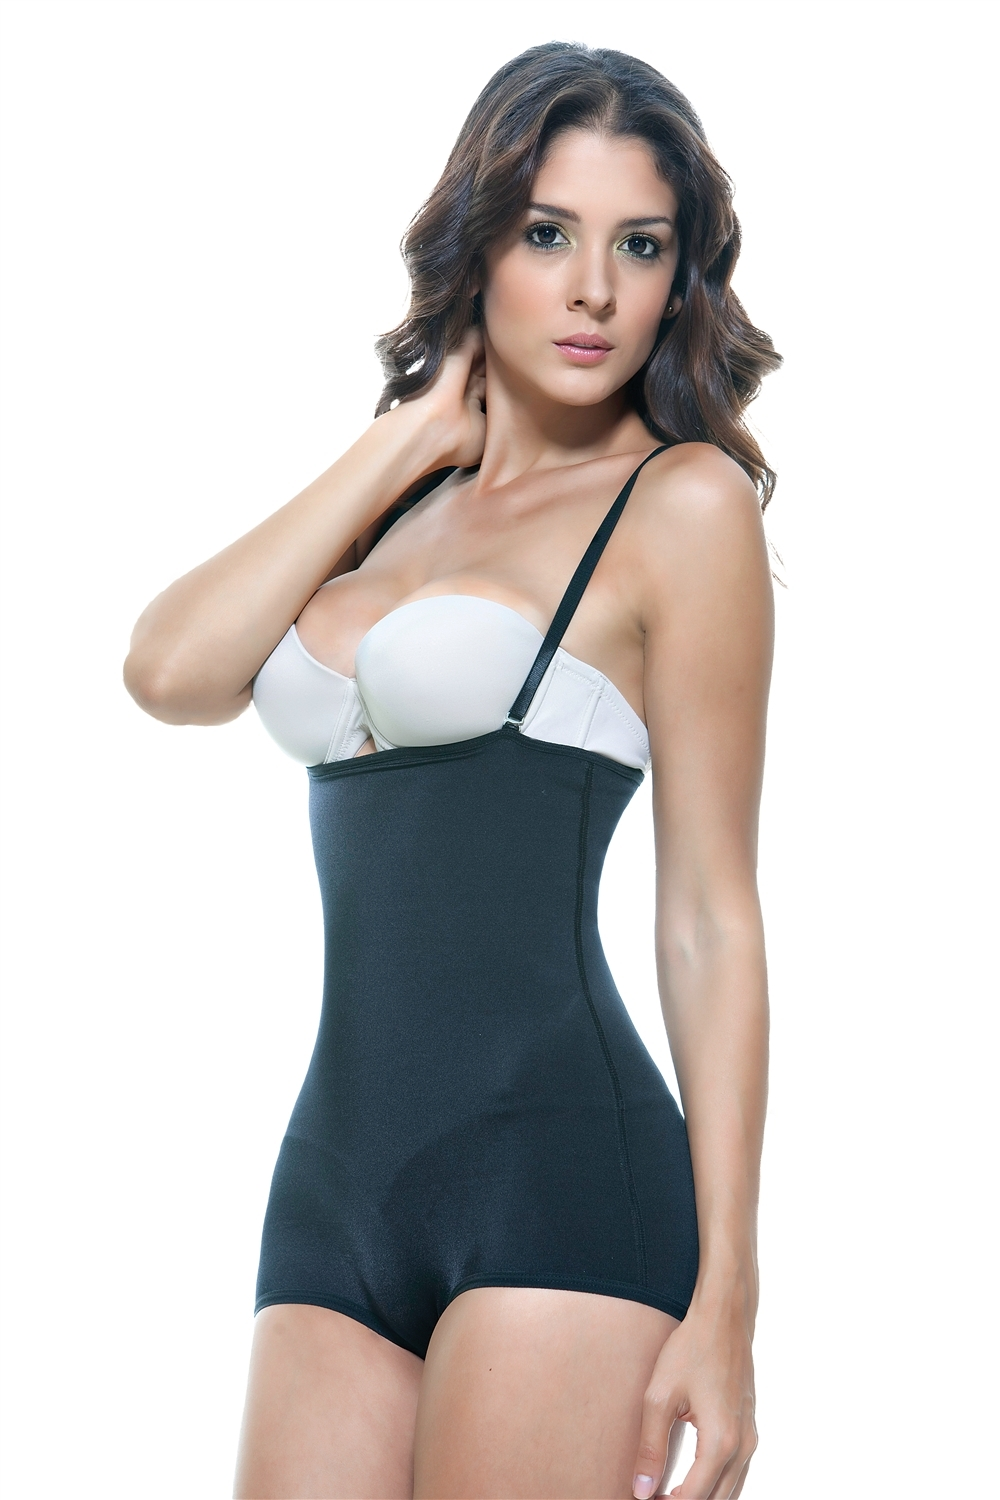 This latex bodysuit shapewear body shaper slimmer is design to Supplim Women Body Shaper Tummy Control Shapewear Underbust Corset Bodysuit. by Supplim. $ $ 19 99 Prime. FREE Shipping on eligible orders. Some sizes/colors are Prime eligible. out of 5 stars 5.